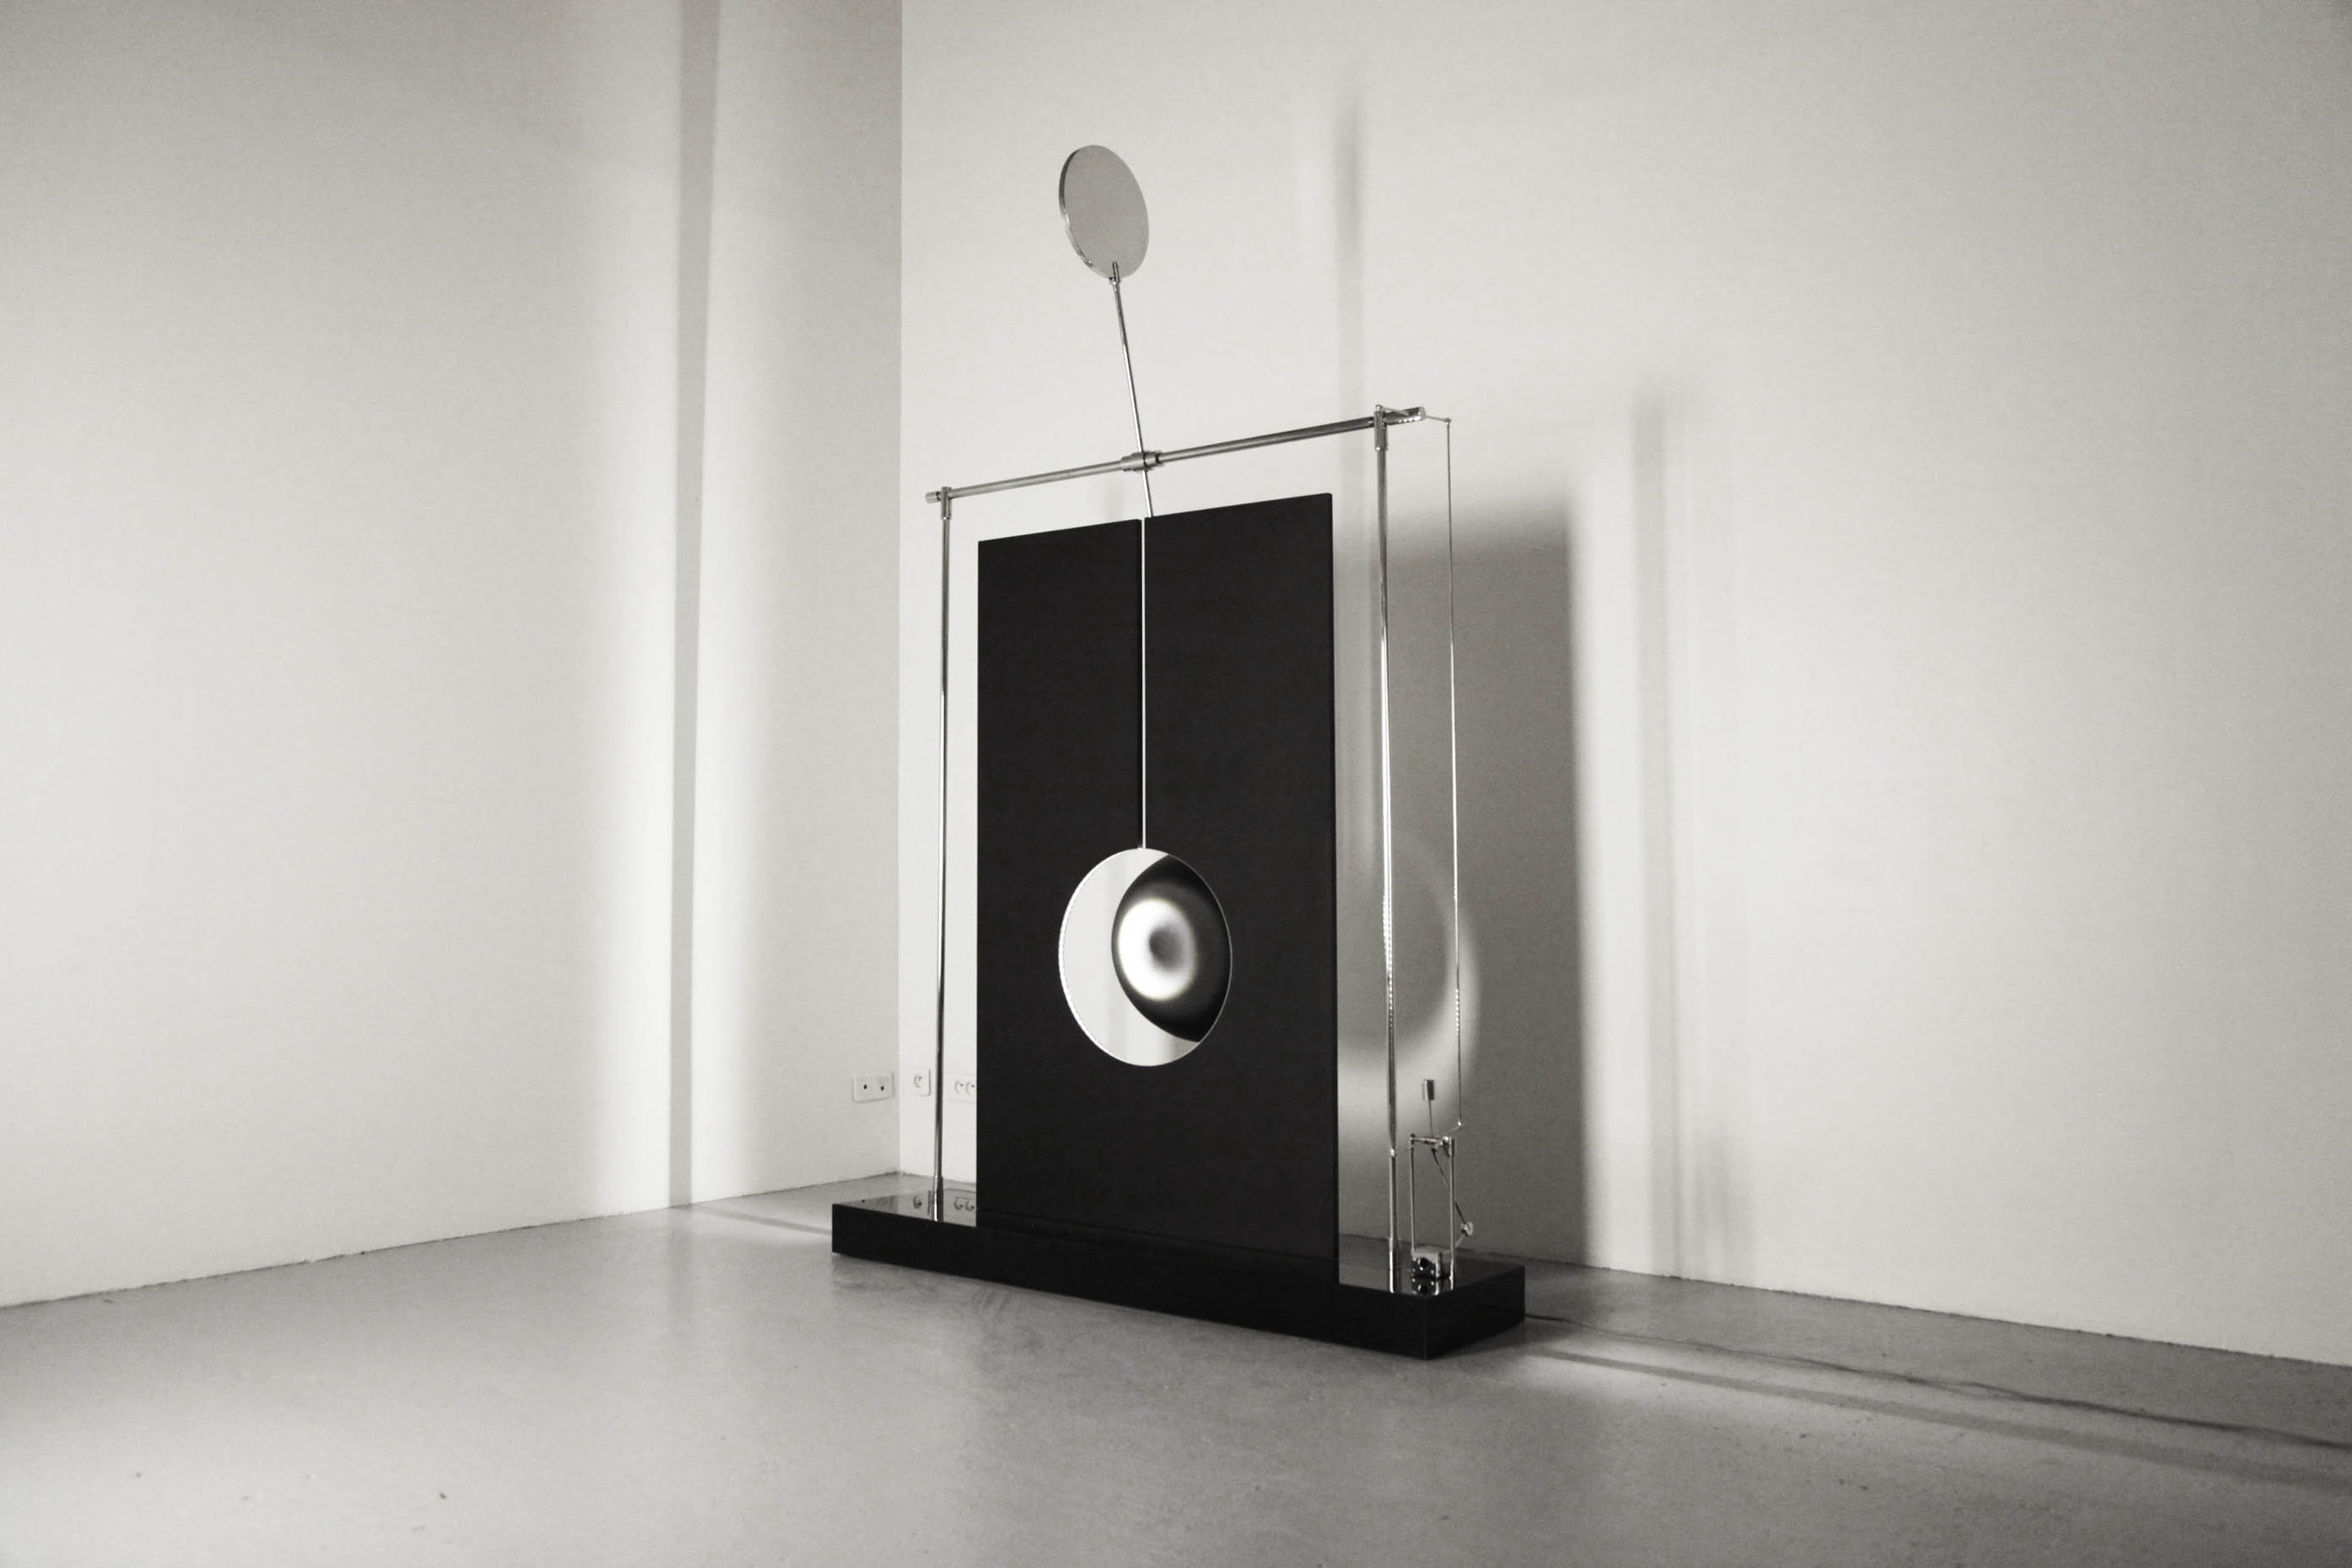 SPATIAL VARIATIONS    Floor sculpture Anodized, bead-blasted aluminum, stainless steel, LED light source 254 x 160 x 40 cm ed. 1/3